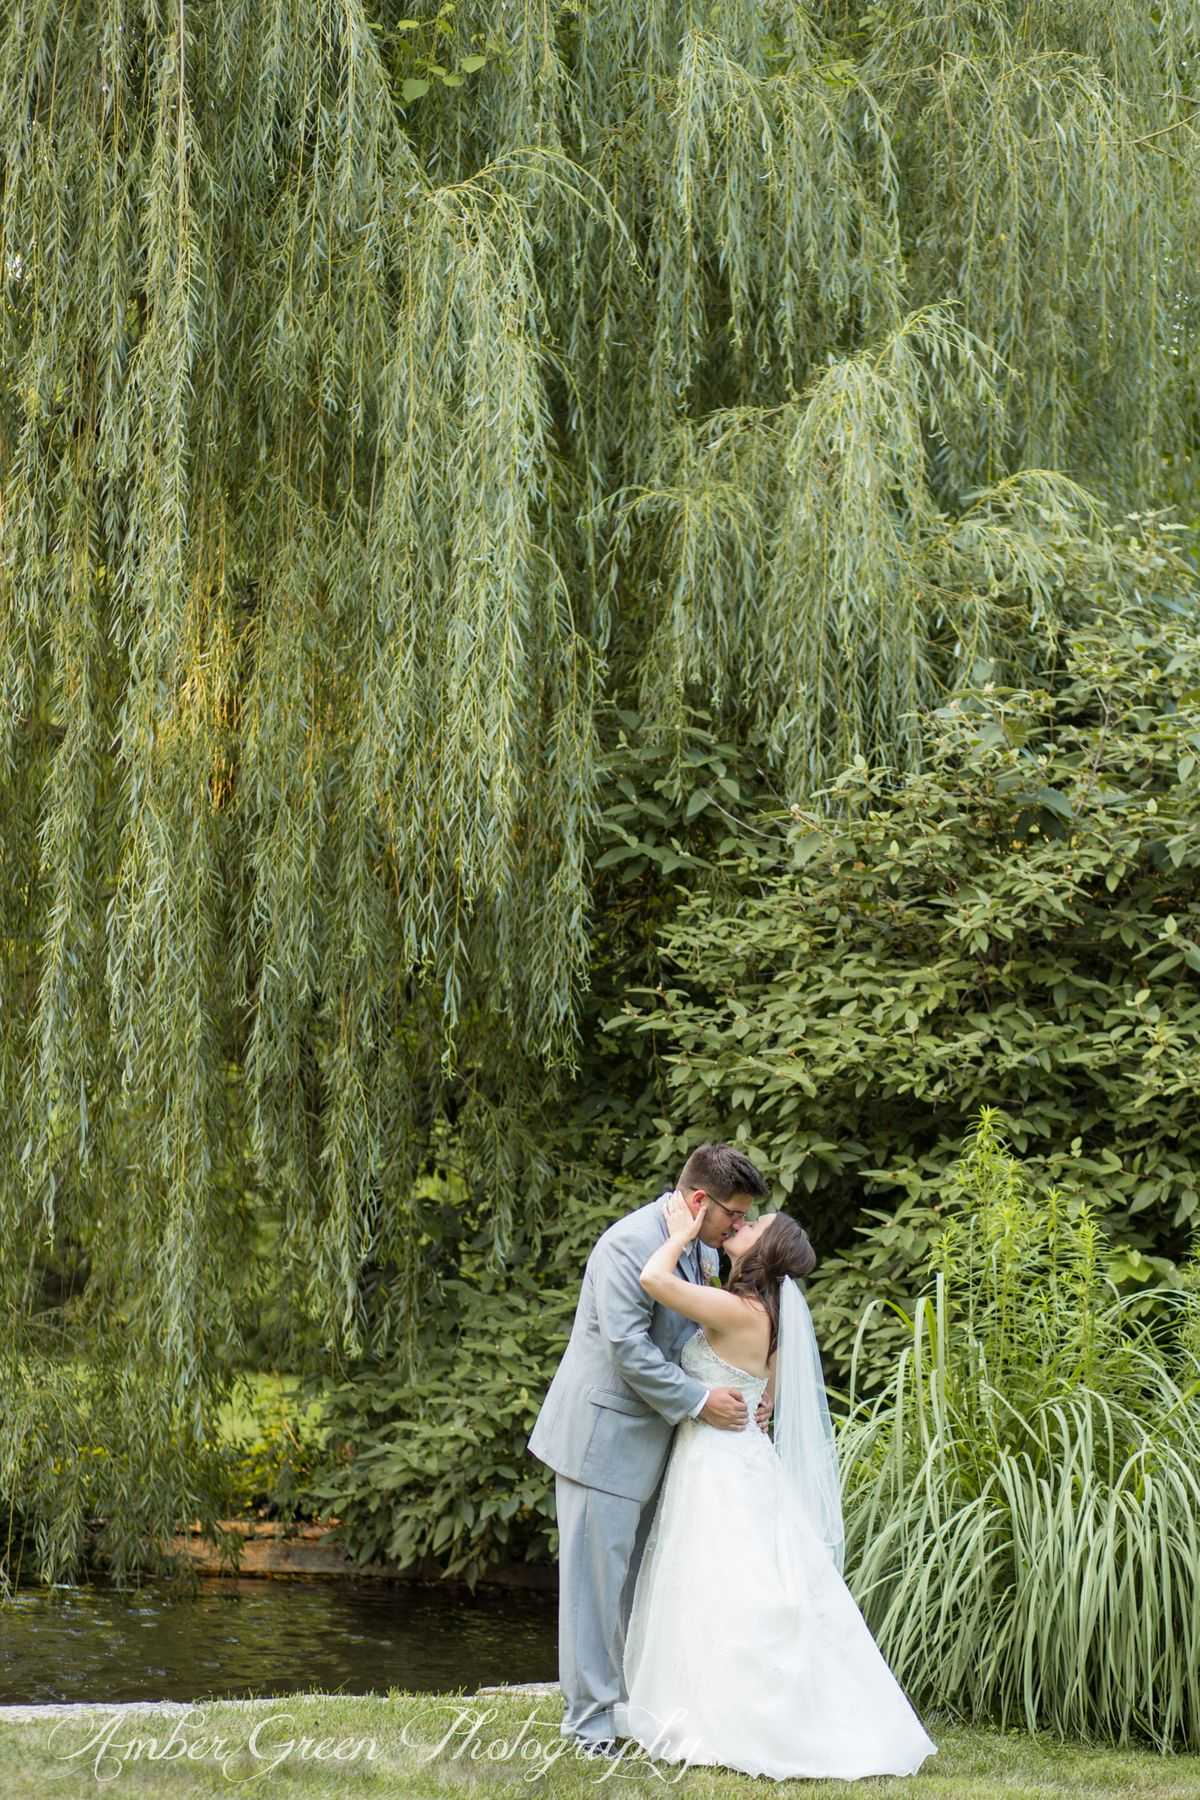 The Weeping Willow at the Koi Pond